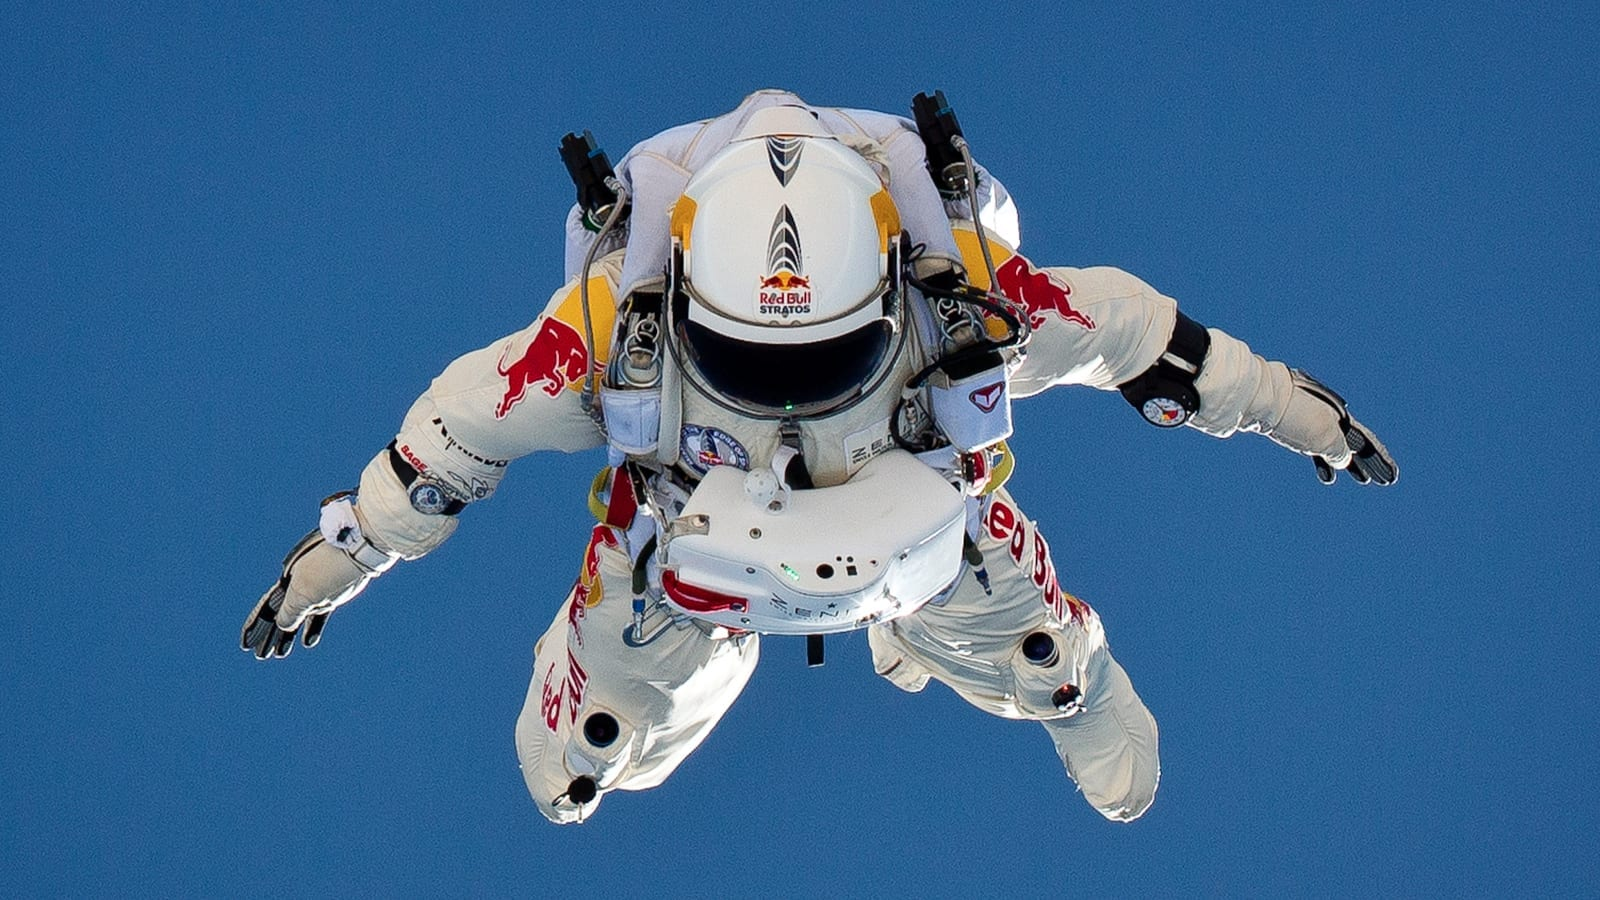 eNitiate | Red Bull | Space